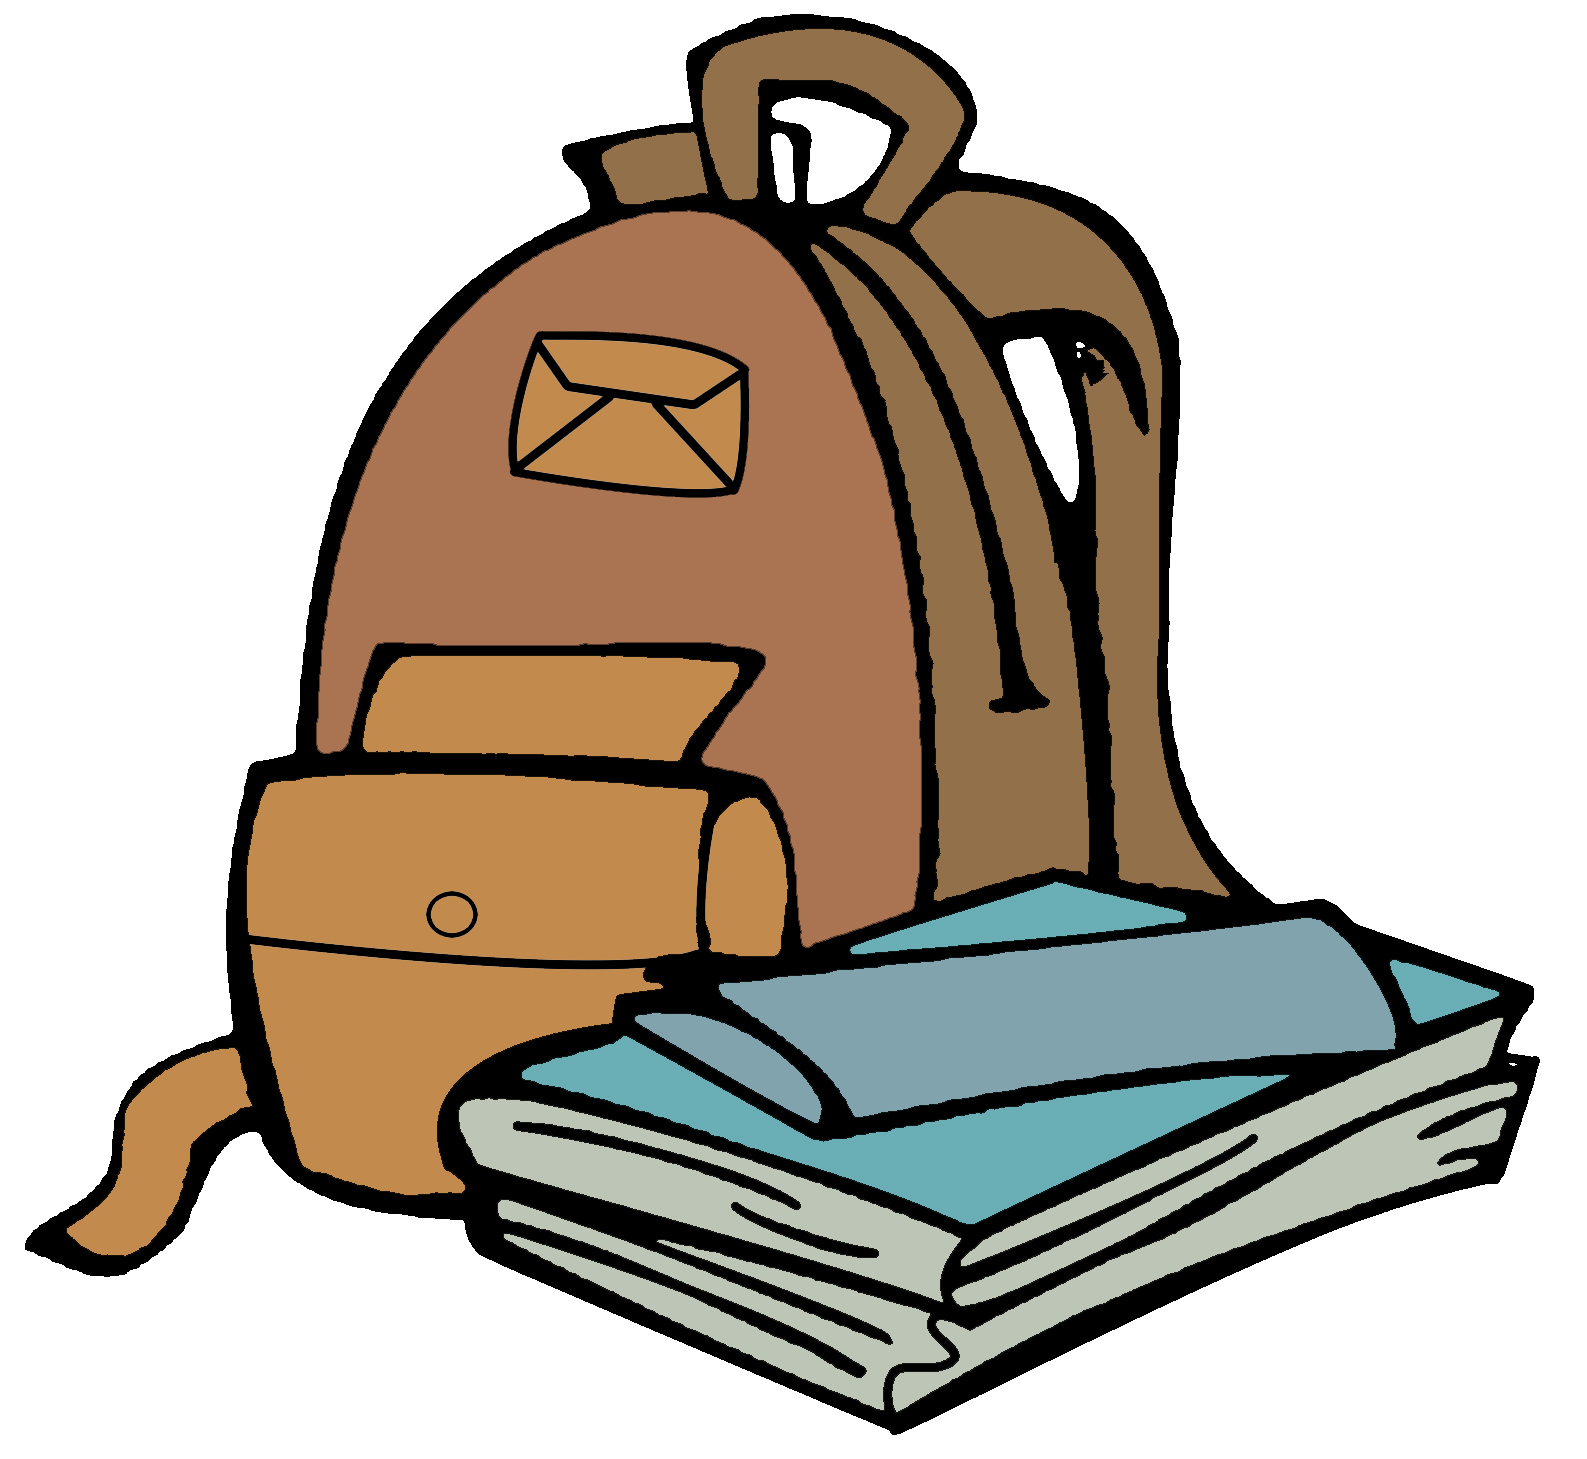 1587x1459 Backpack Clipart Image Clip Art Image Of A Red Backpack Image